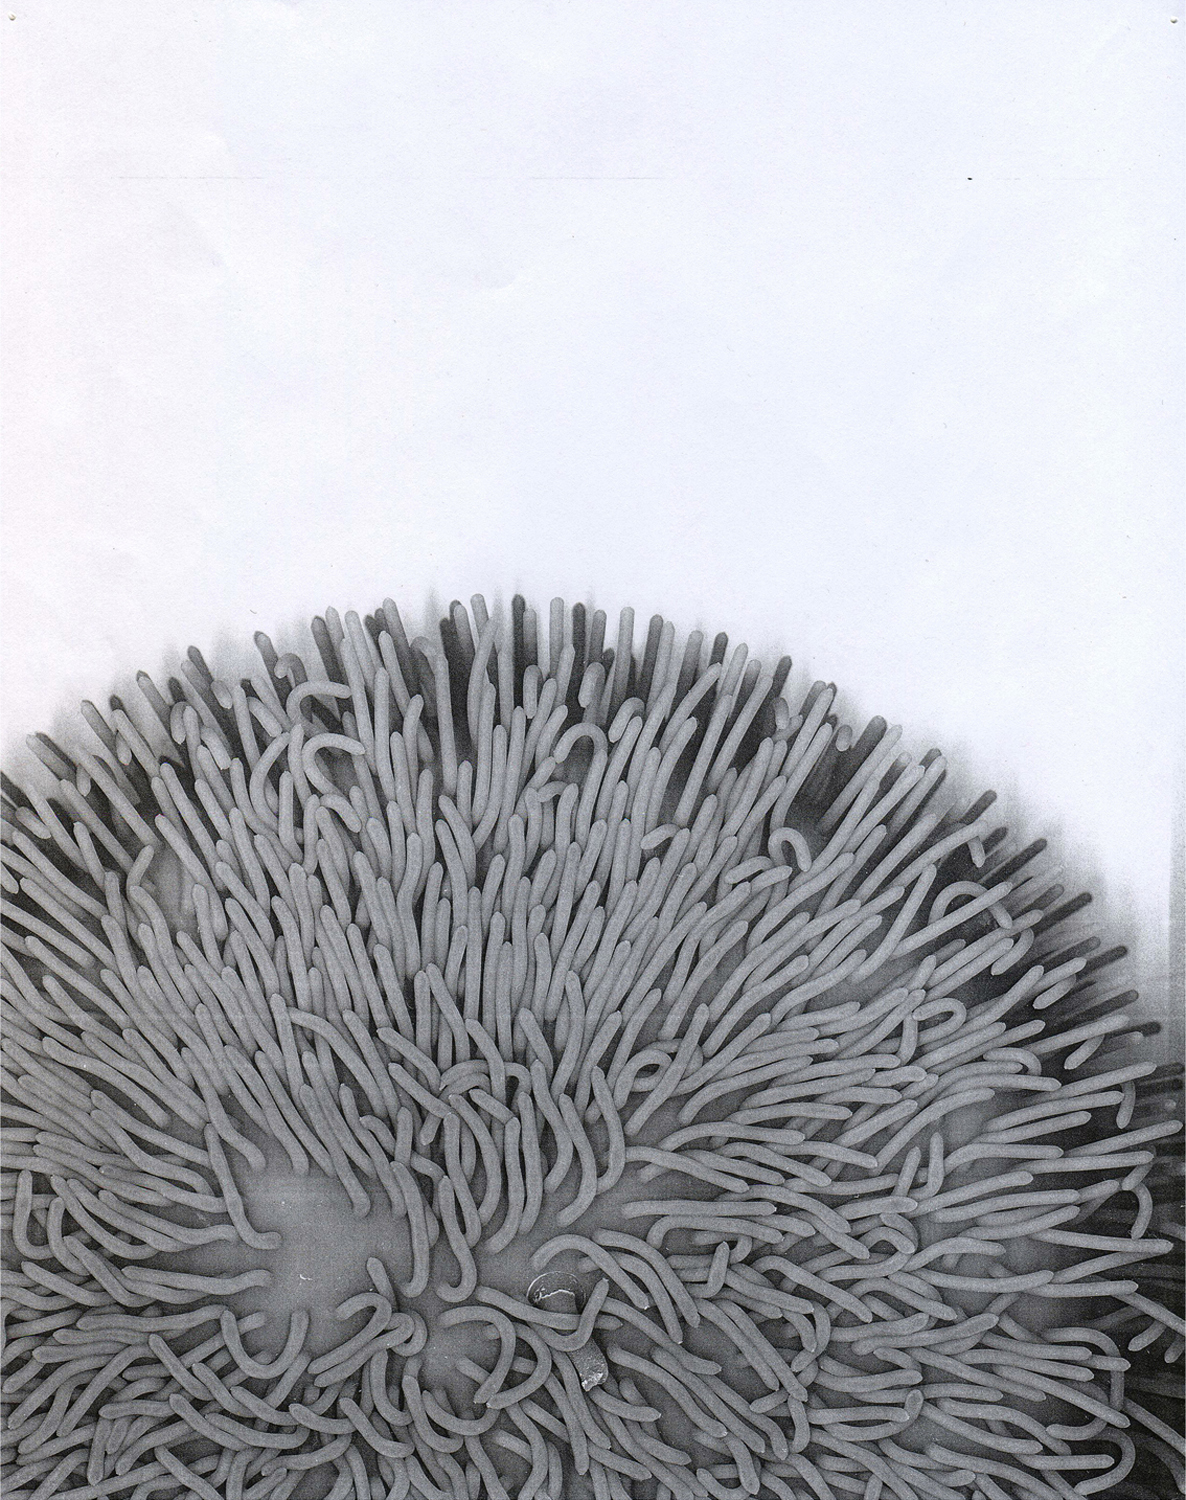 Xerox (Koosh) , 2015.  Digital print of a photocopy.  20 x 17 in.